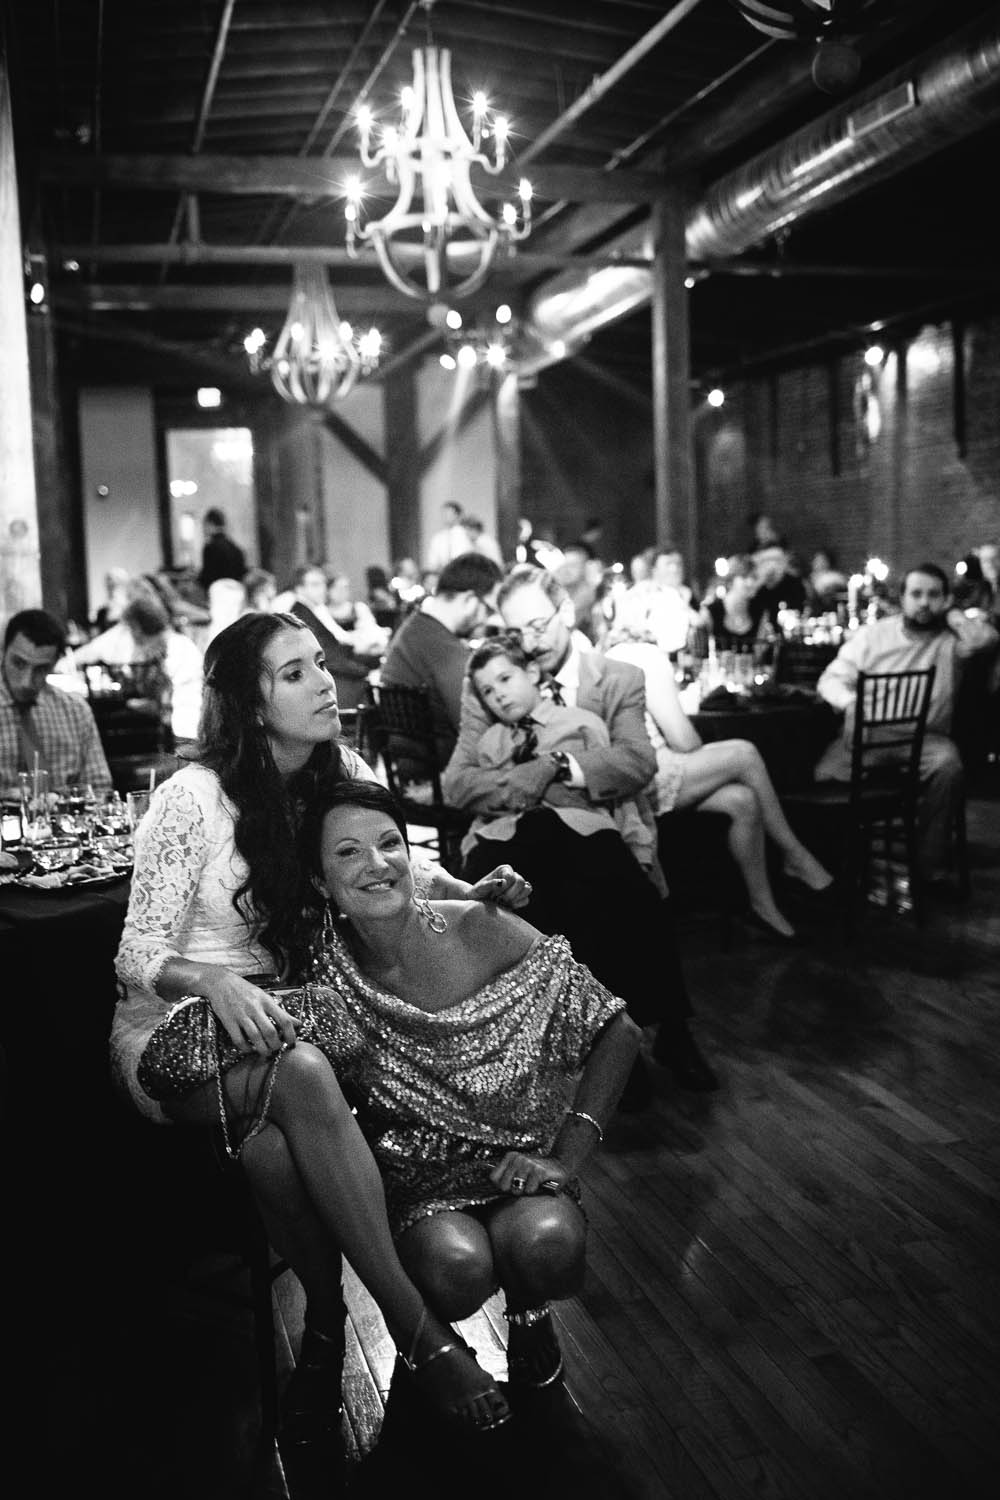 cannery ballroom nashville night-time wedding photography dark beautiful documentary ©2016abigailbobophotography-18.jpg